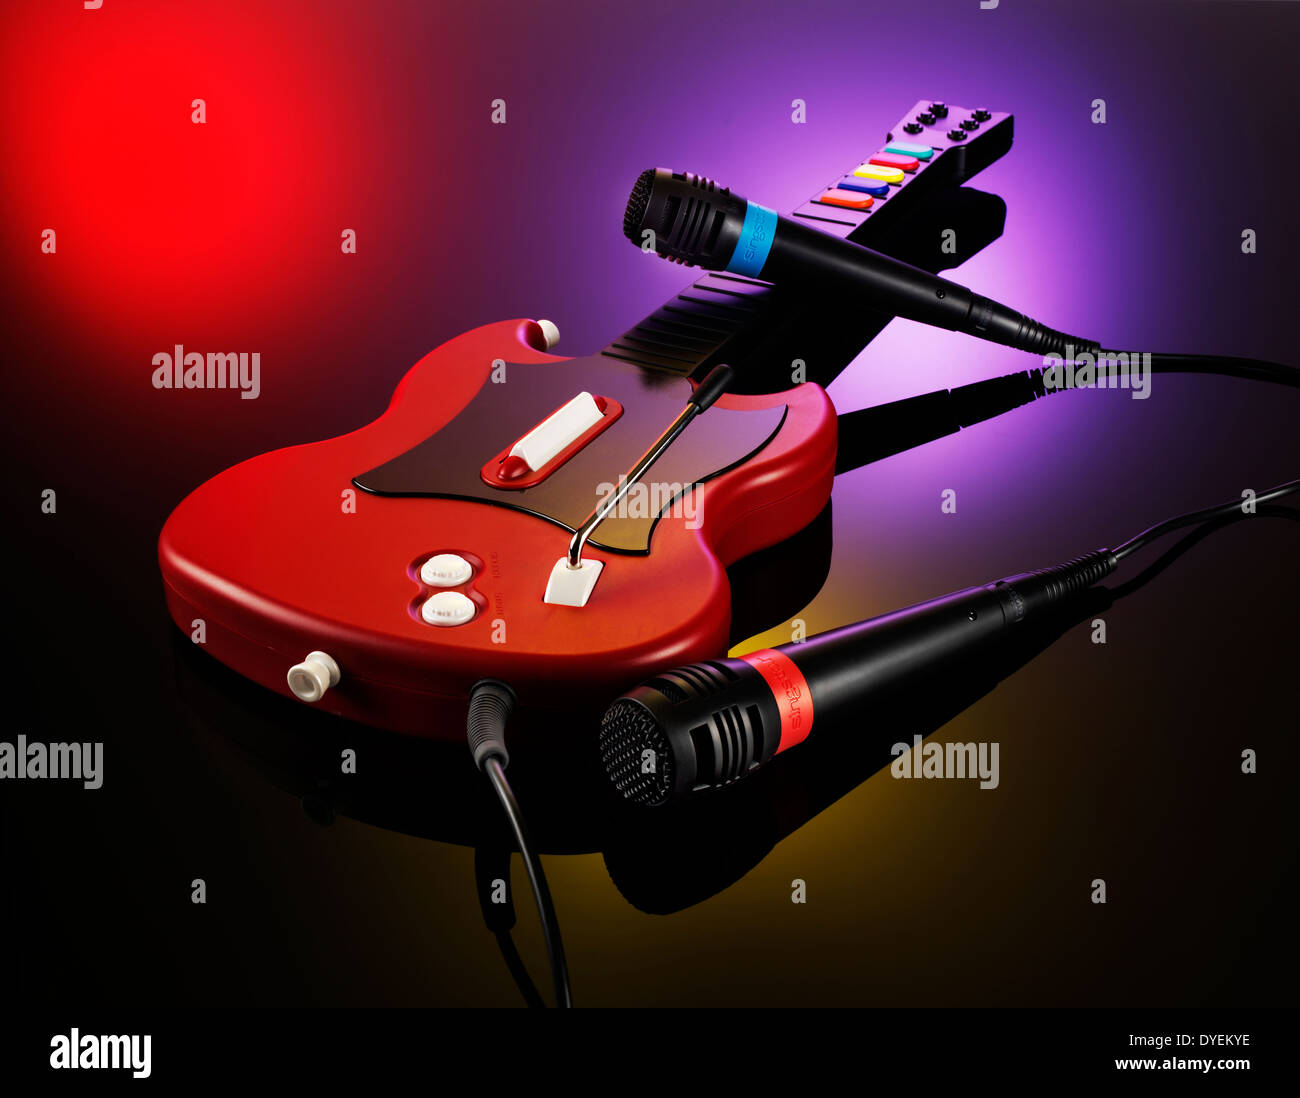 TWO MICROPHONES AND A GUITAR FROM THE VIDEO GAME GUITAR HERO ON A PINK BLACK RED BACKGROUND - Stock Image